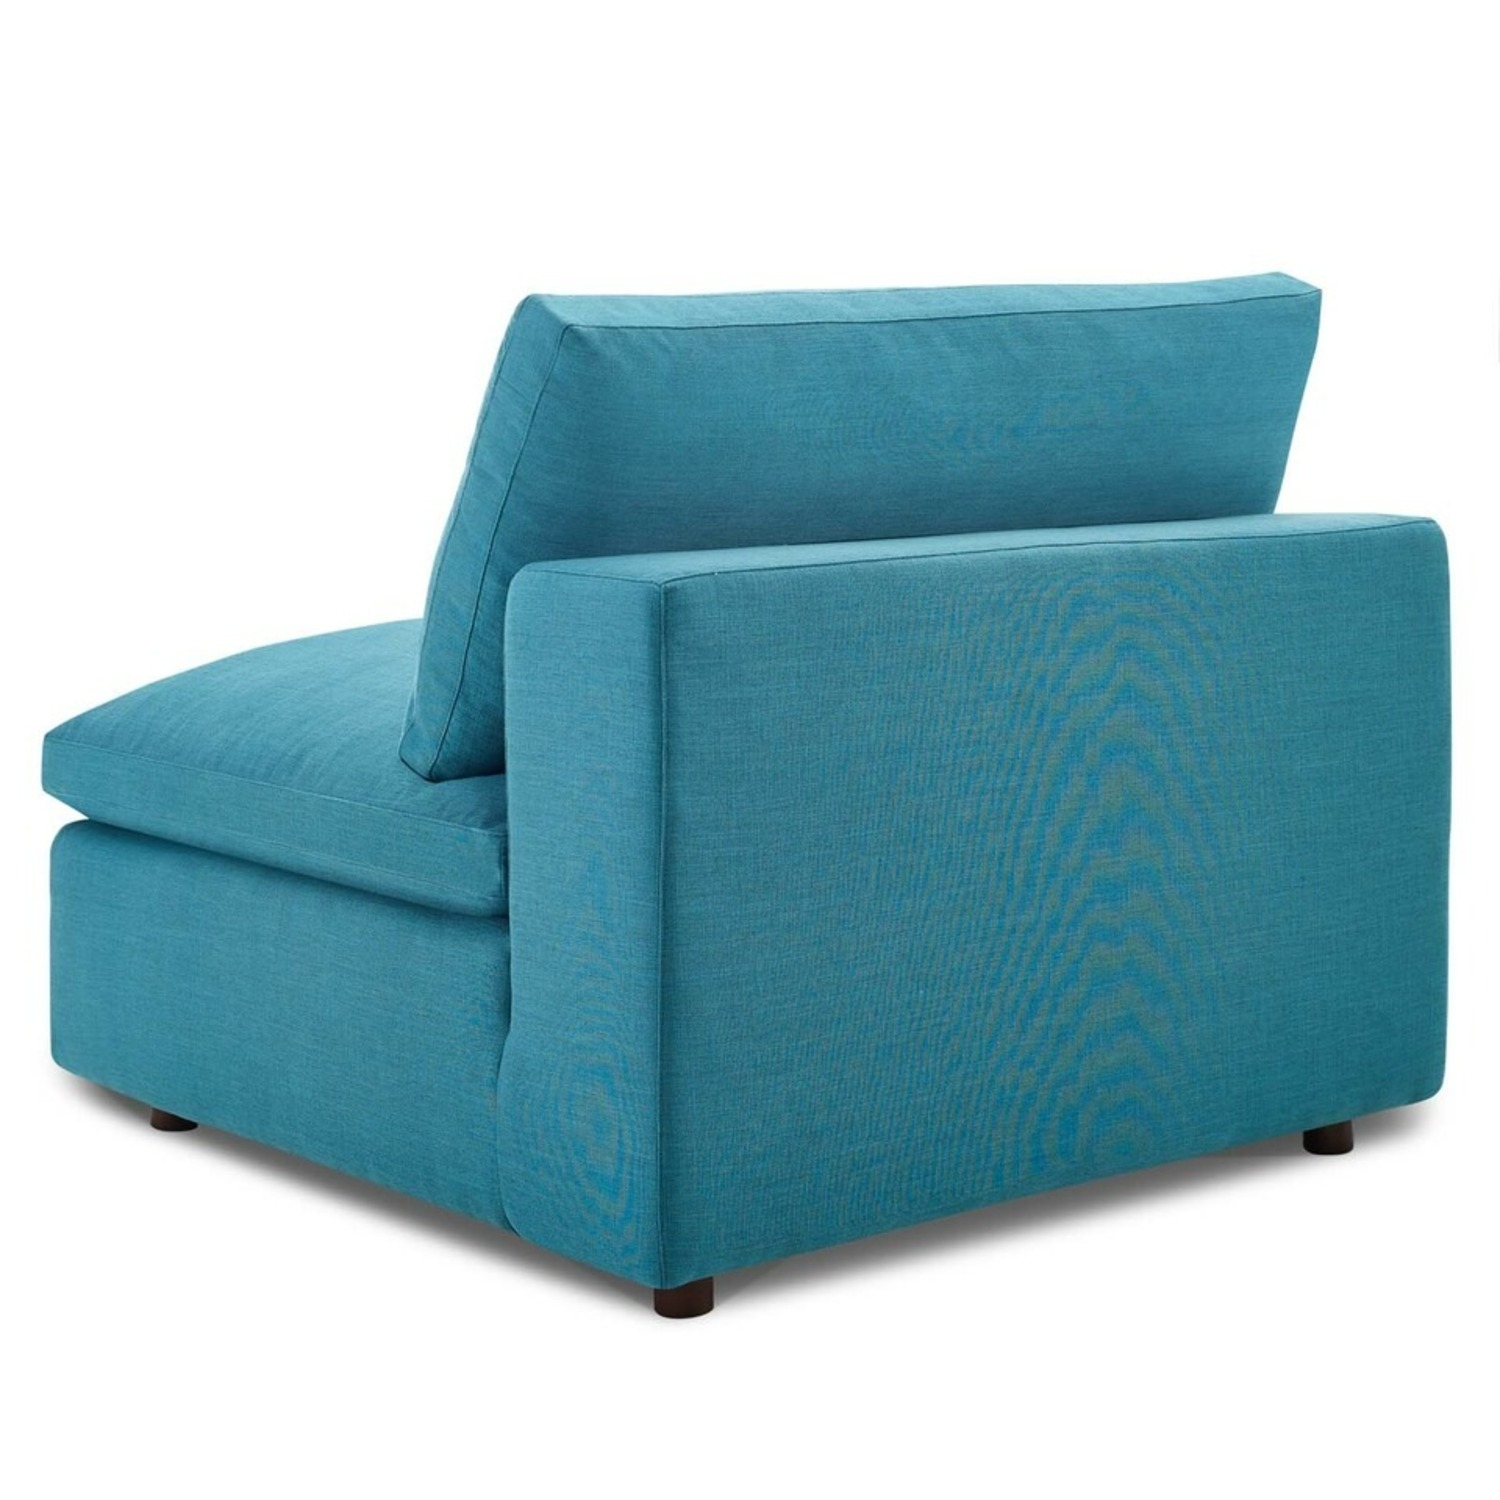 6-Piece Sectional Sofa In Teal Linen Fabric - image-3